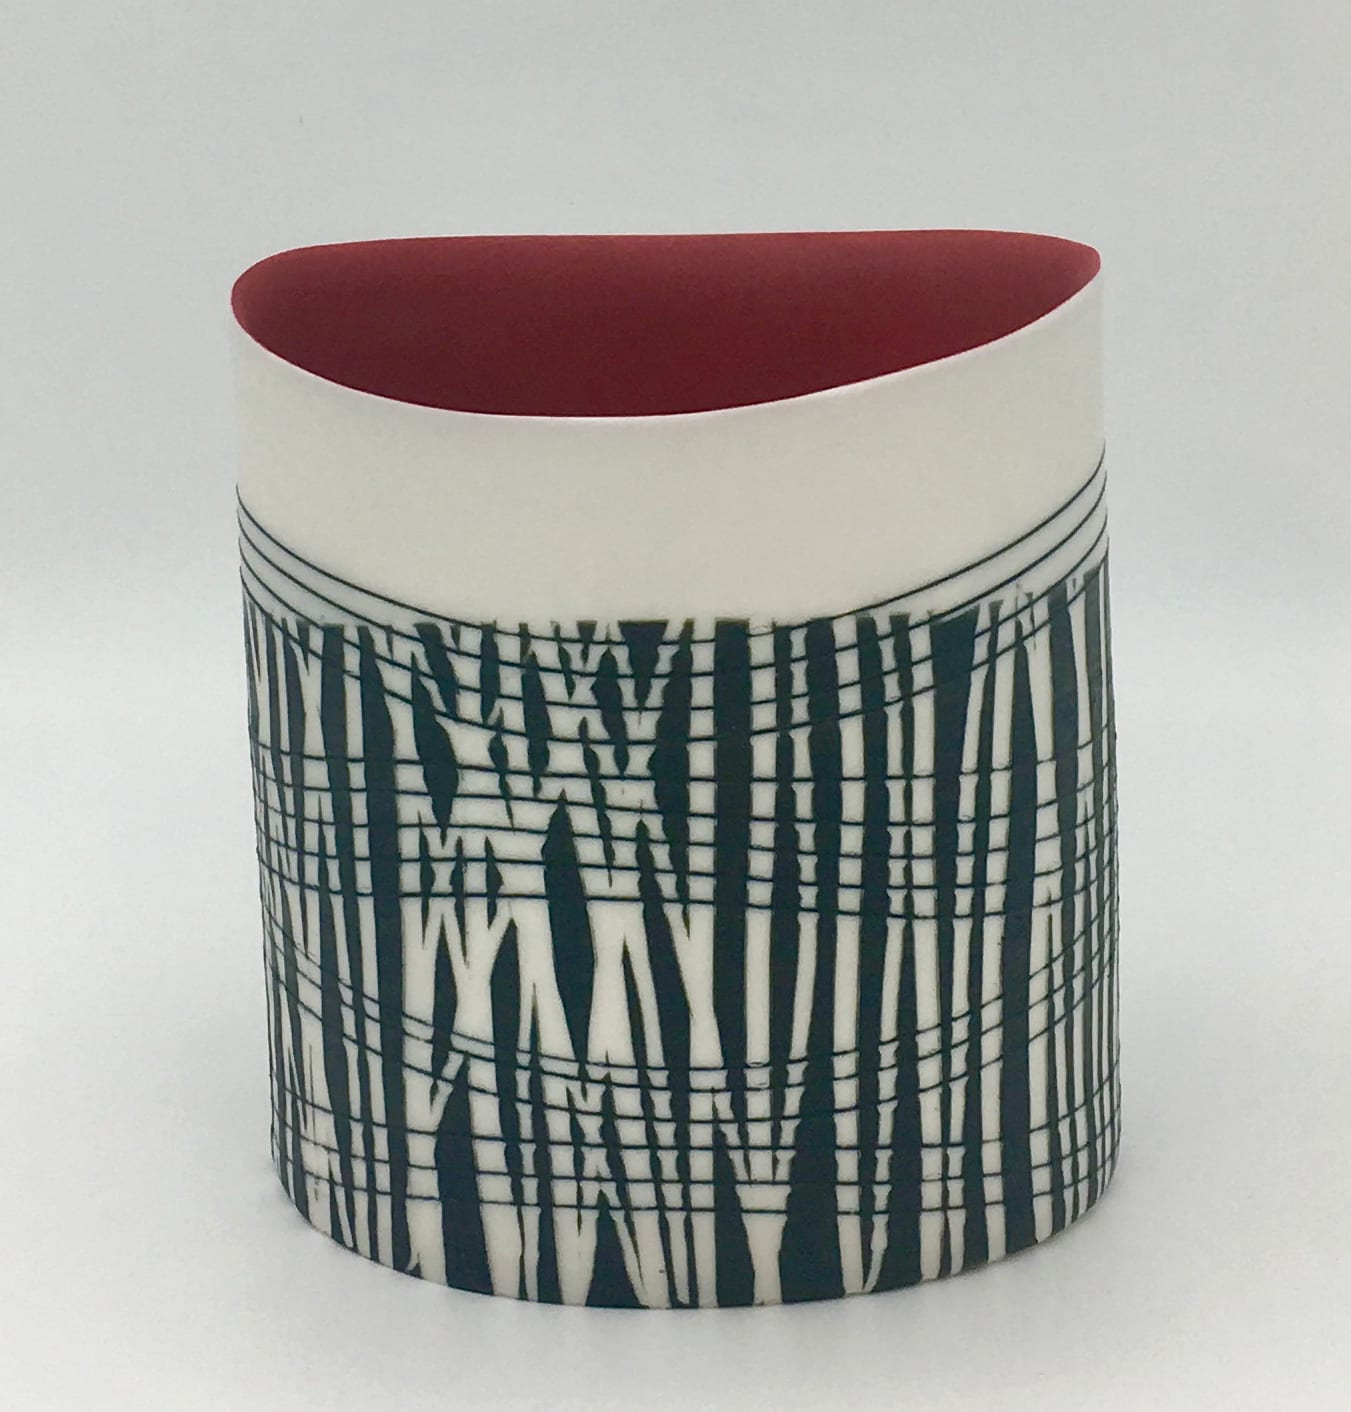 """<span class=""""link fancybox-details-link""""><a href=""""/artists/195-lara-scobie/works/6524-lara-scobie-oval-vessel-with-red-interior-2019/"""">View Detail Page</a></span><div class=""""artist""""><strong>Lara Scobie</strong></div> b. 1967 <div class=""""title""""><em>Oval Vessel with Red Interior</em>, 2019</div> <div class=""""medium"""">Porcelain</div><div class=""""copyright_line"""">Own Art: £28 x 10 Months, 0% APR</div>"""